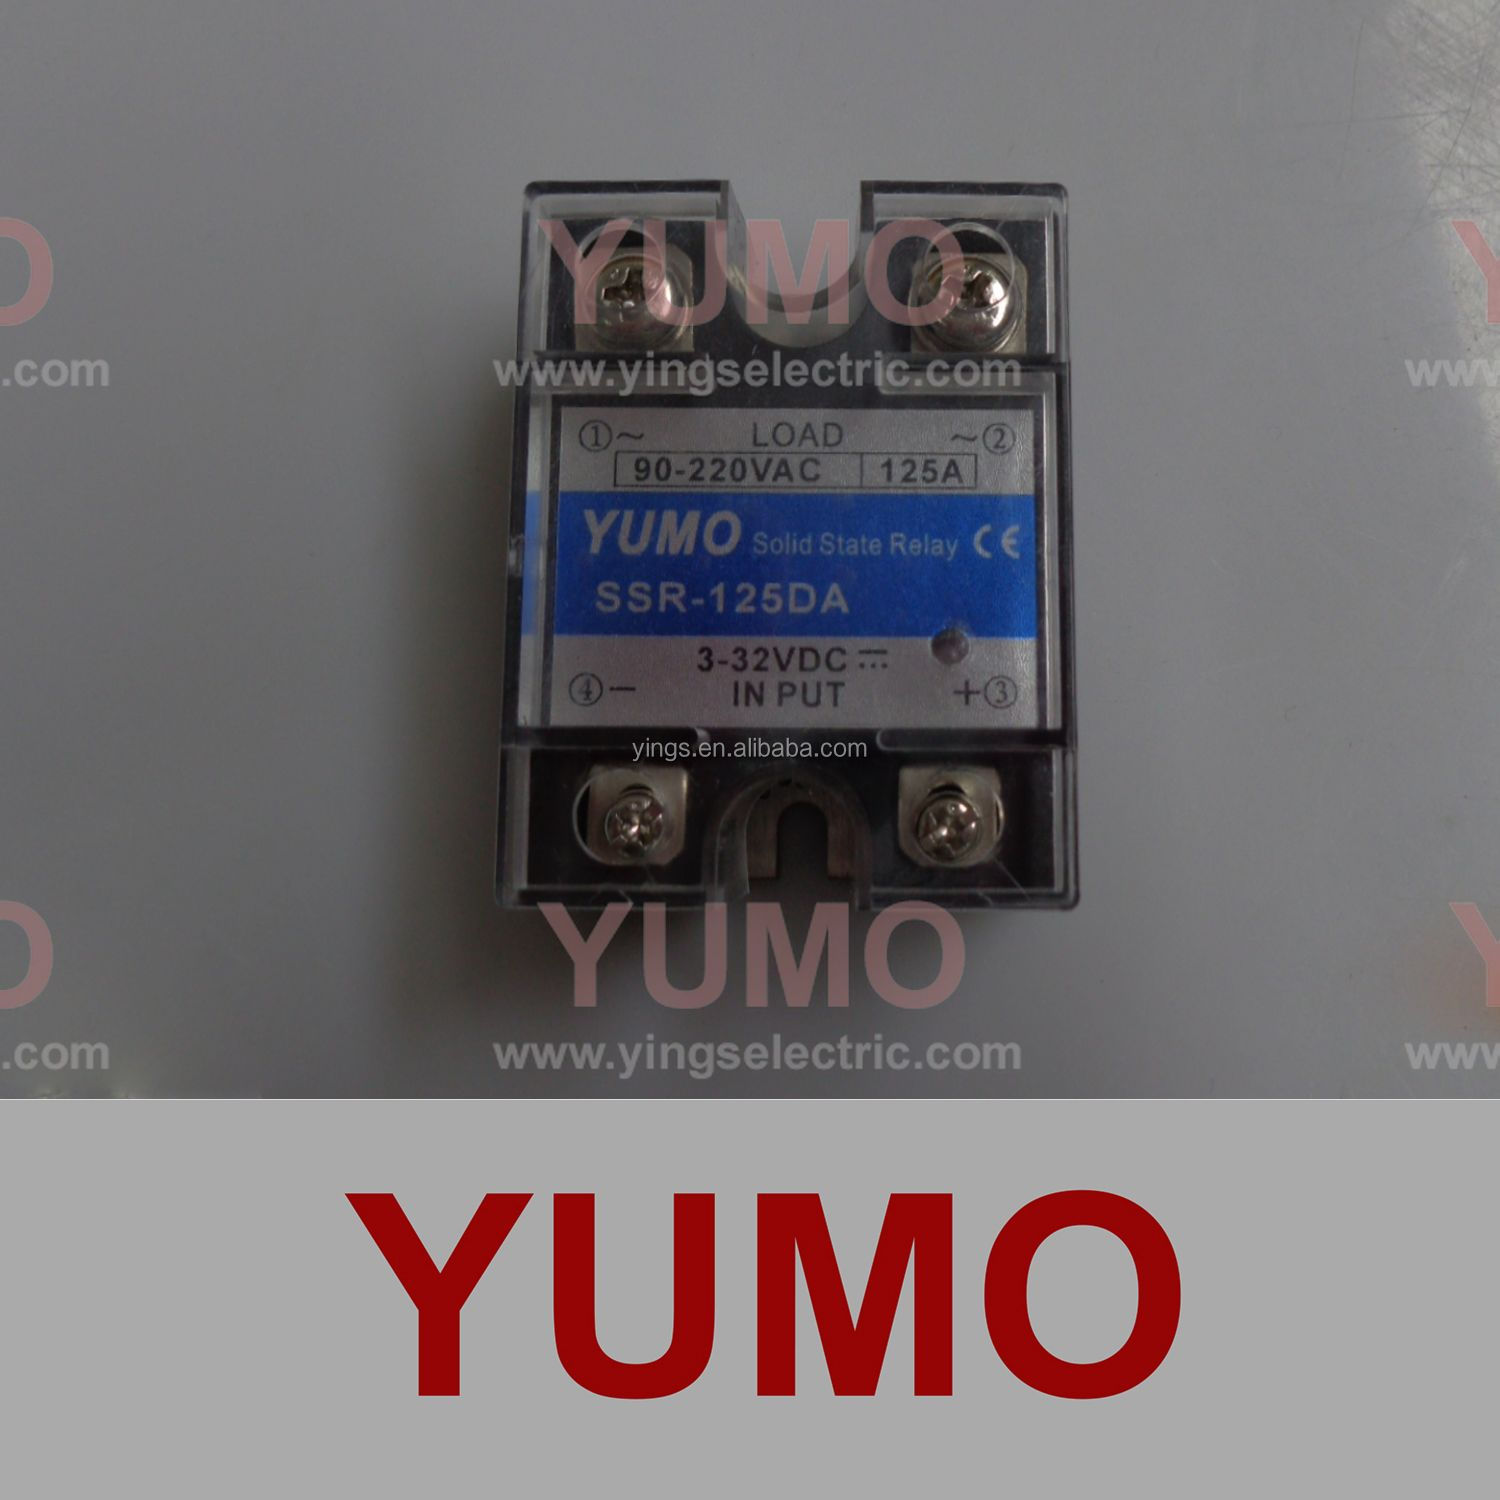 Ssr 125da Yumo Solid State Relay Buy Relaysolid Product On Basic Of